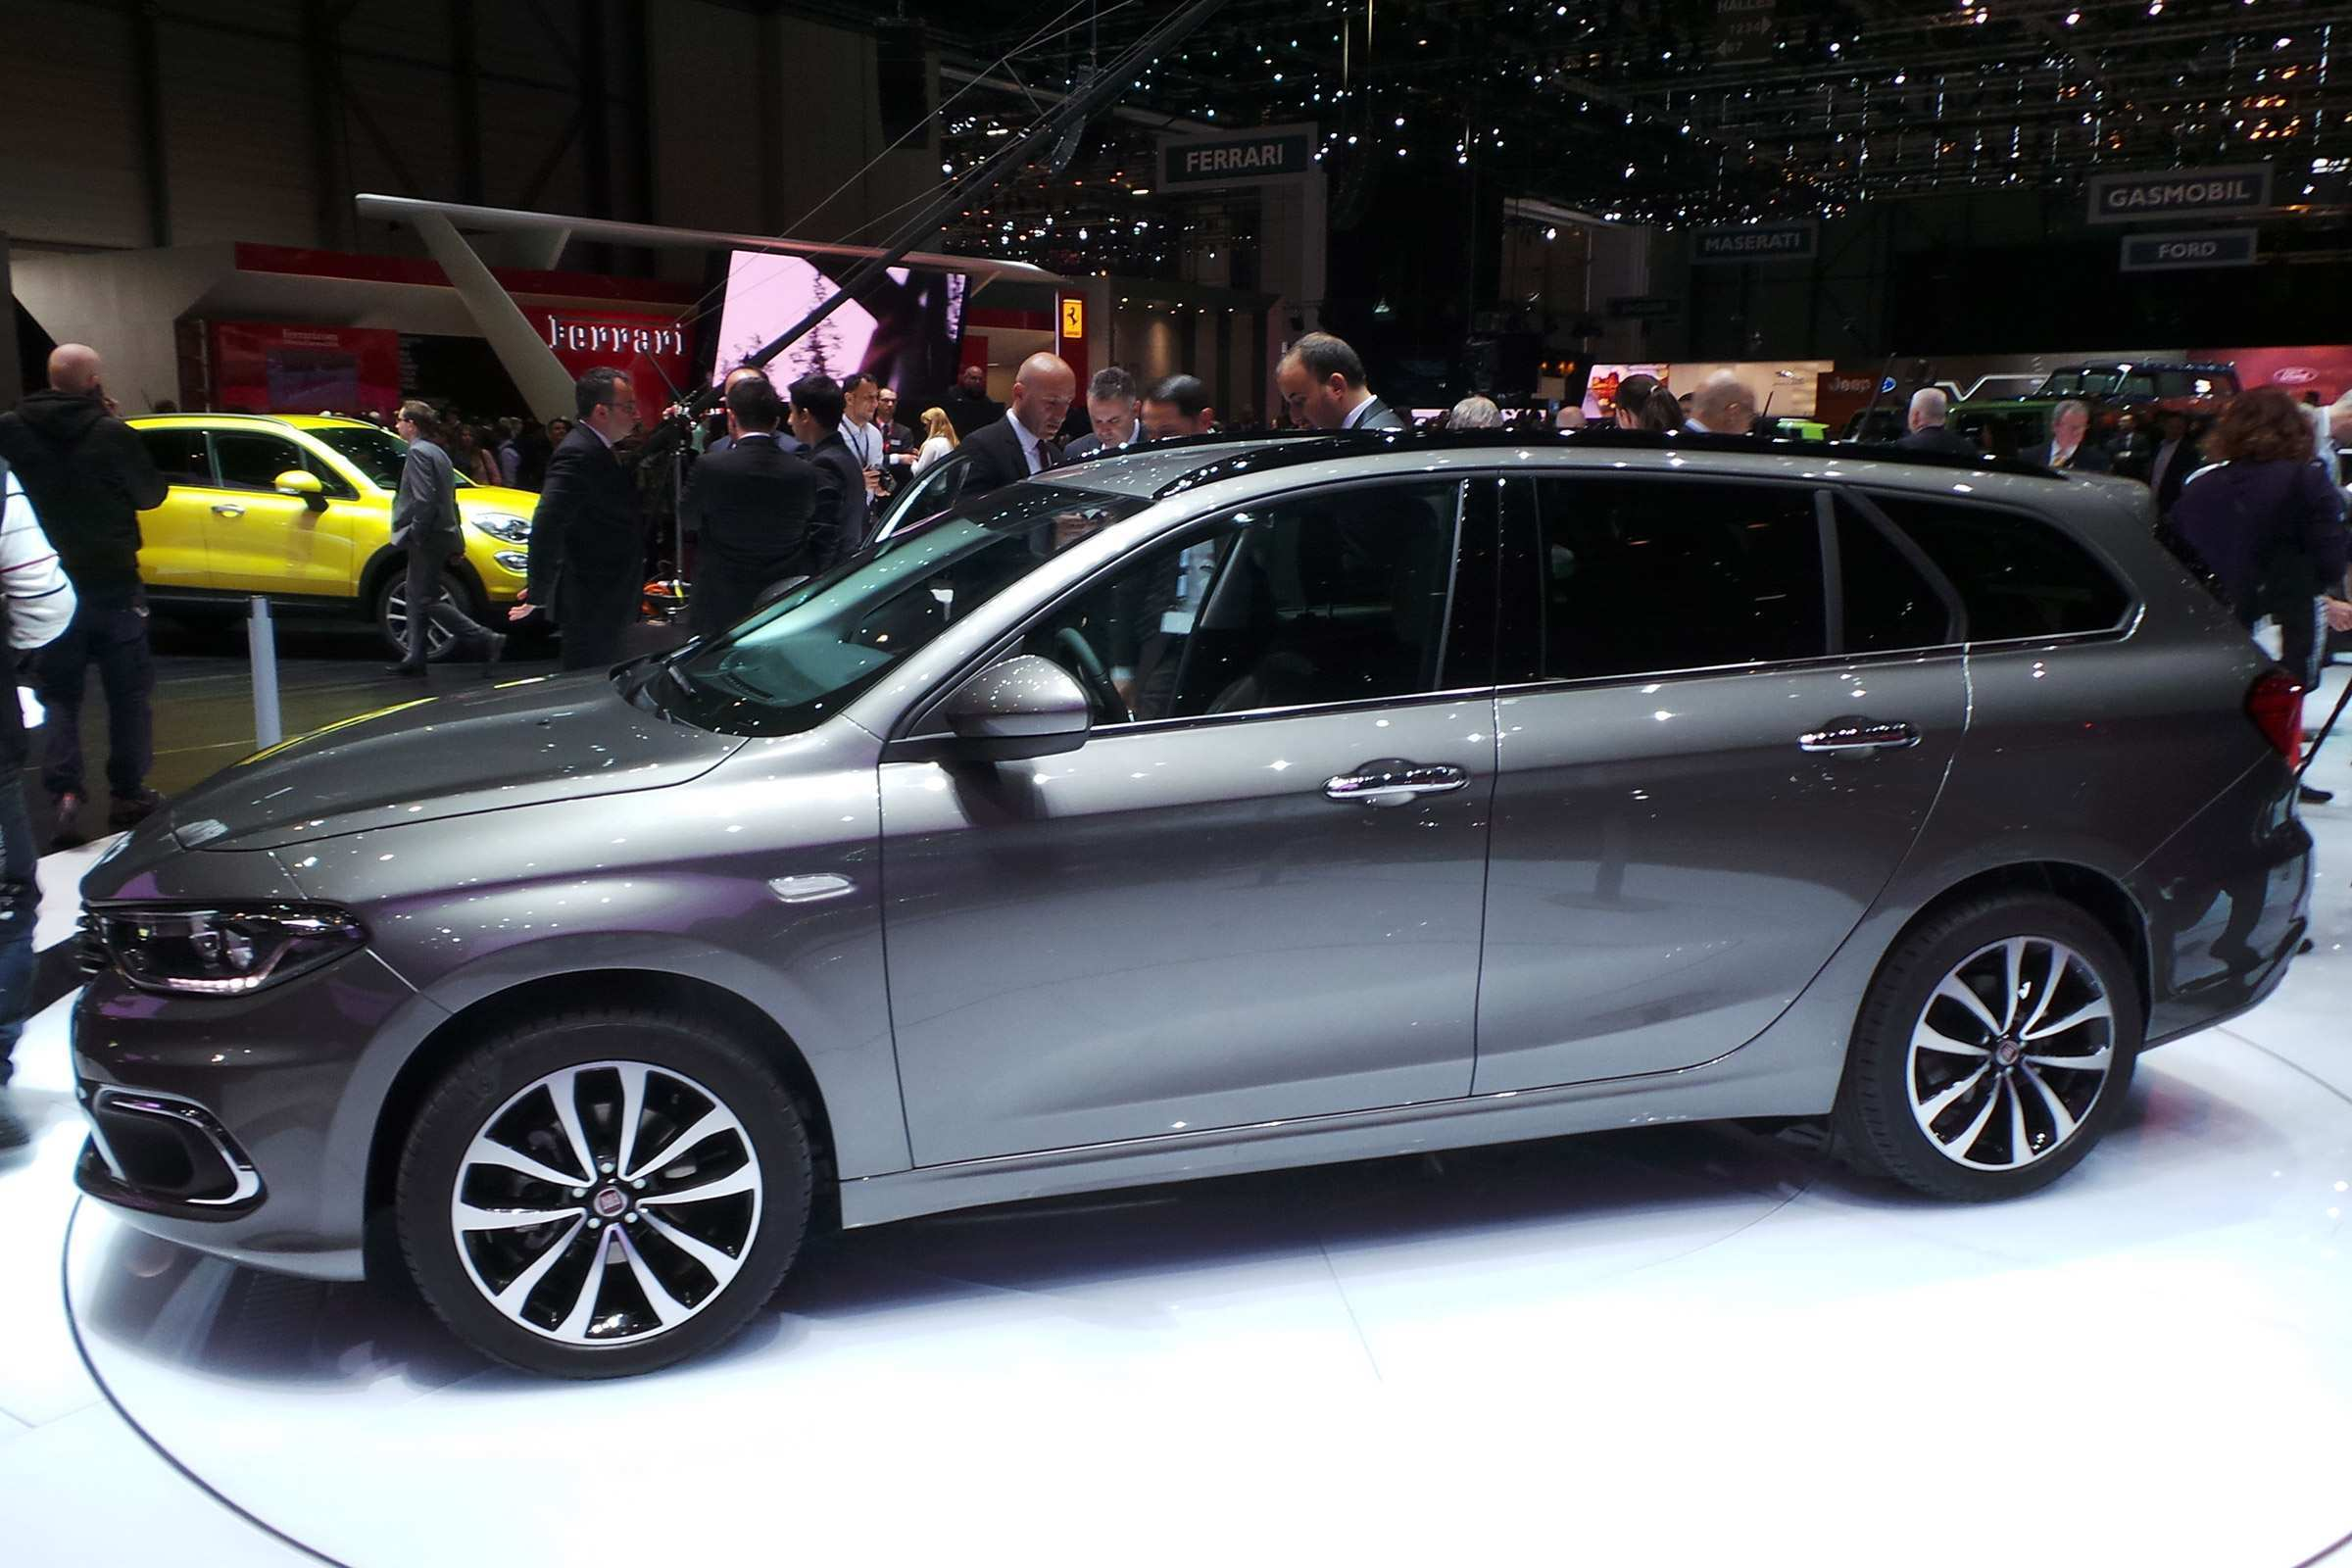 58 Concept of Fiat Tipo 2020 Images for Fiat Tipo 2020